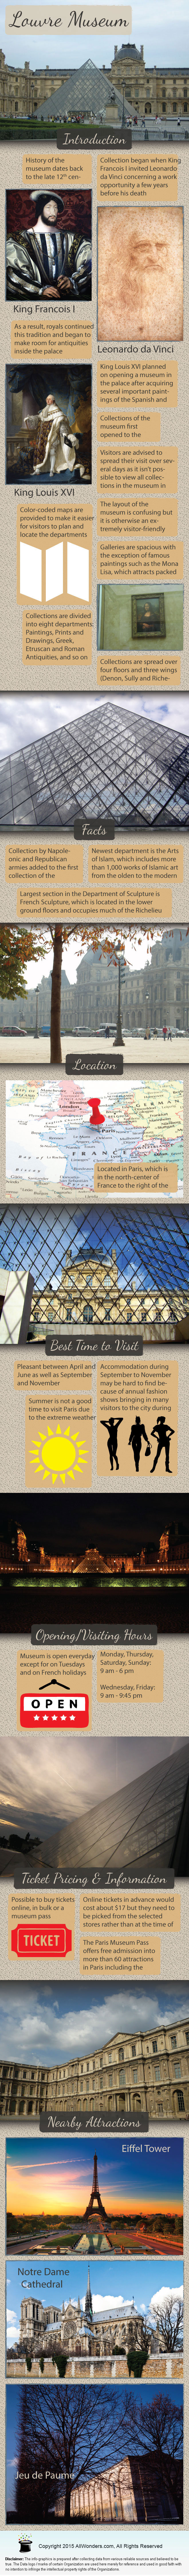 Louvre Museum - Facts & Infographic